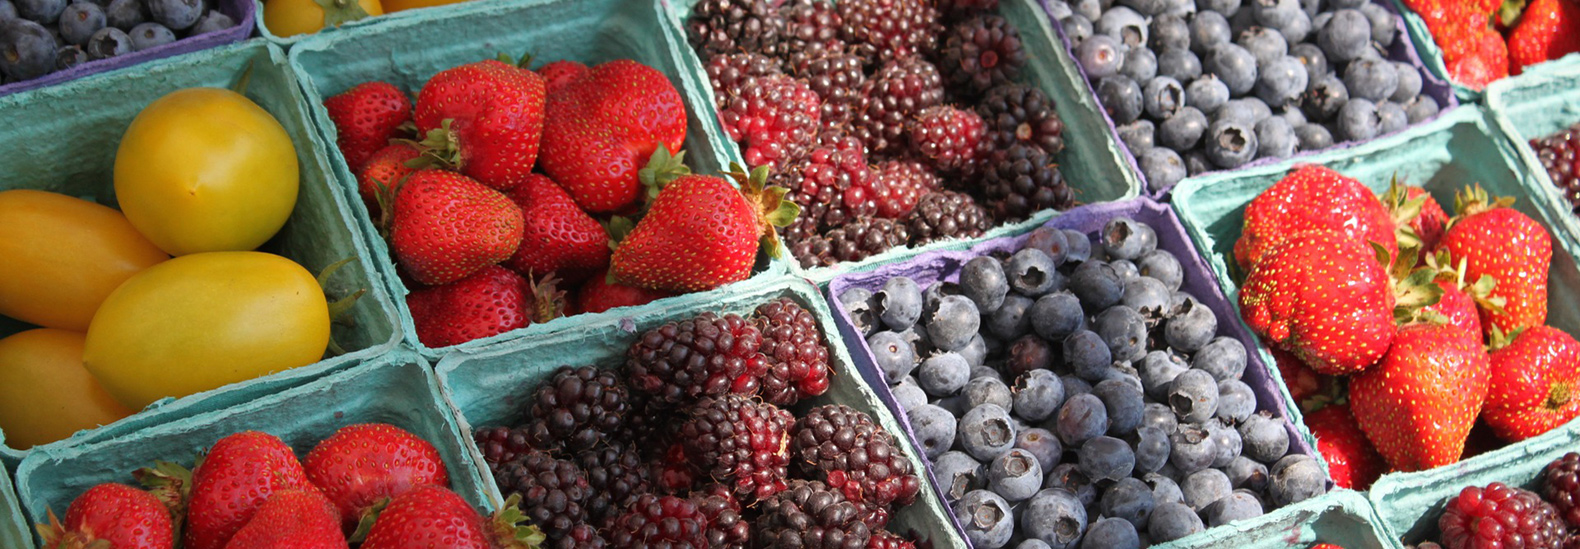 8 tips to keep your summer fruits and vegetables fresher for longer